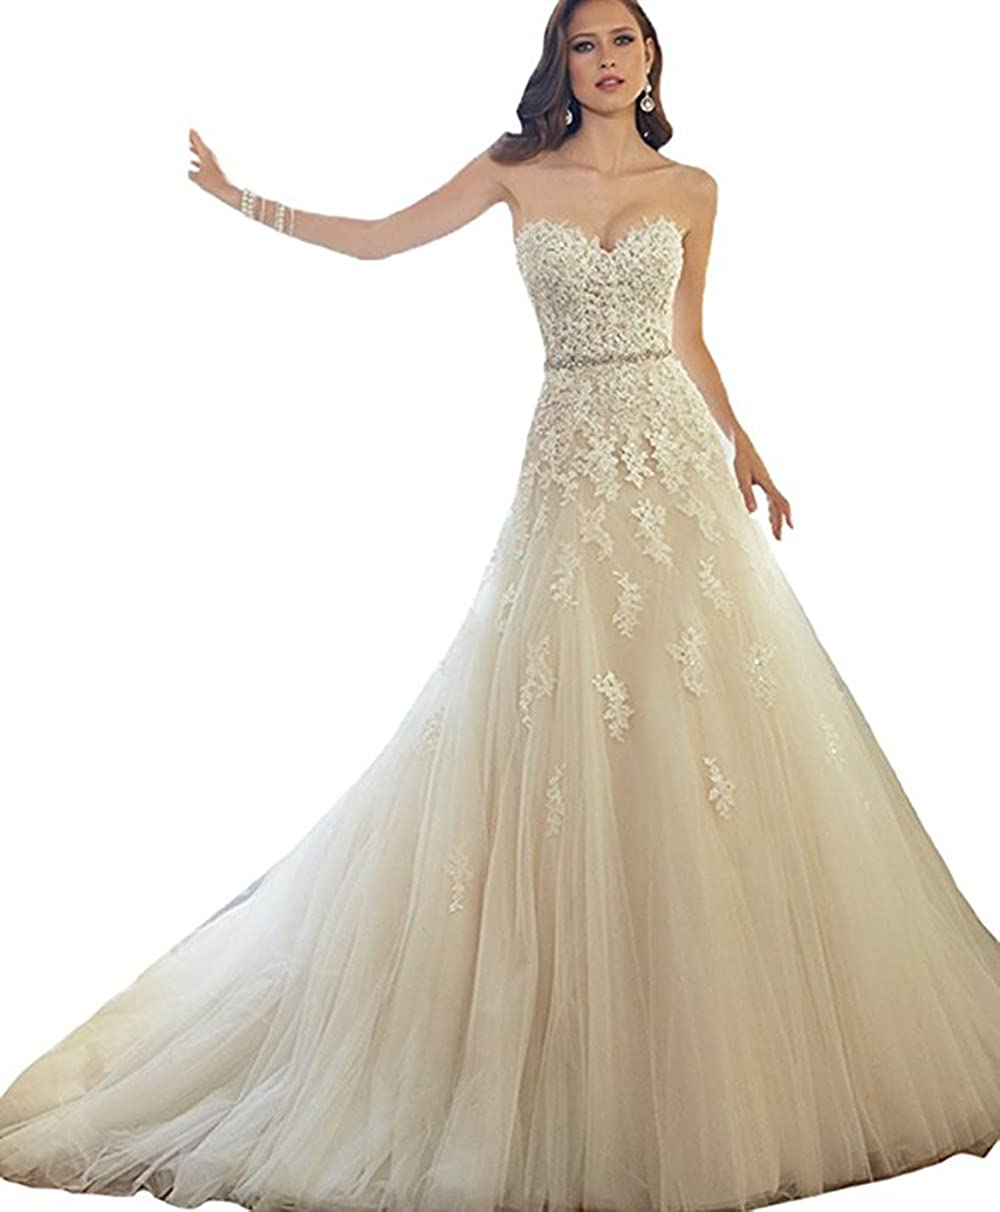 Champagne NOVIA Women's Sweetheart Lace Applique Beads Wedding Dress Long Bridal Ball Gown